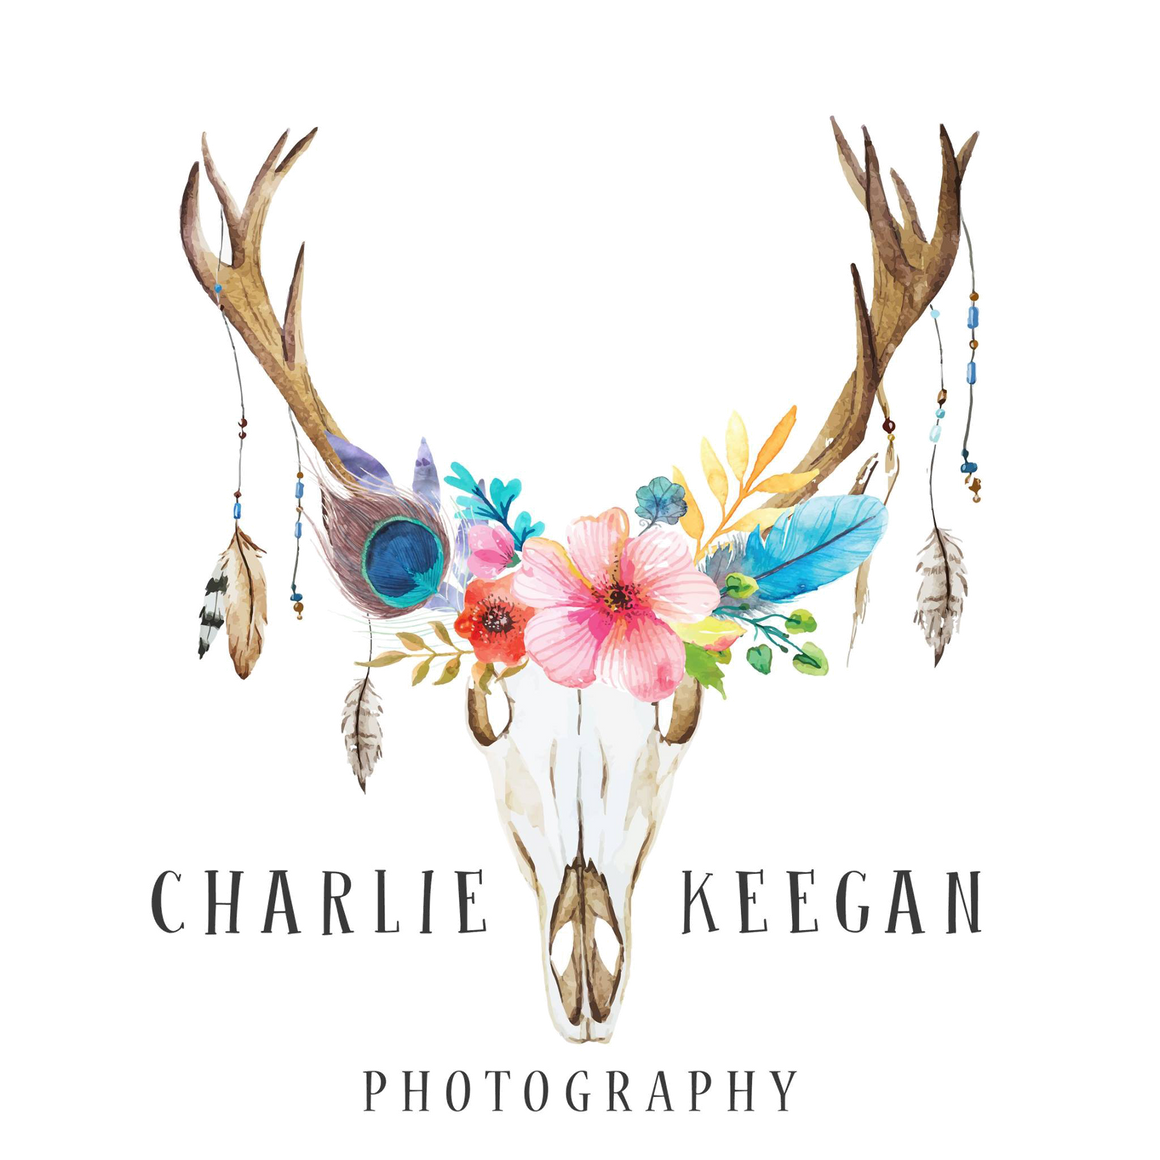 Charlie Keegan Photography